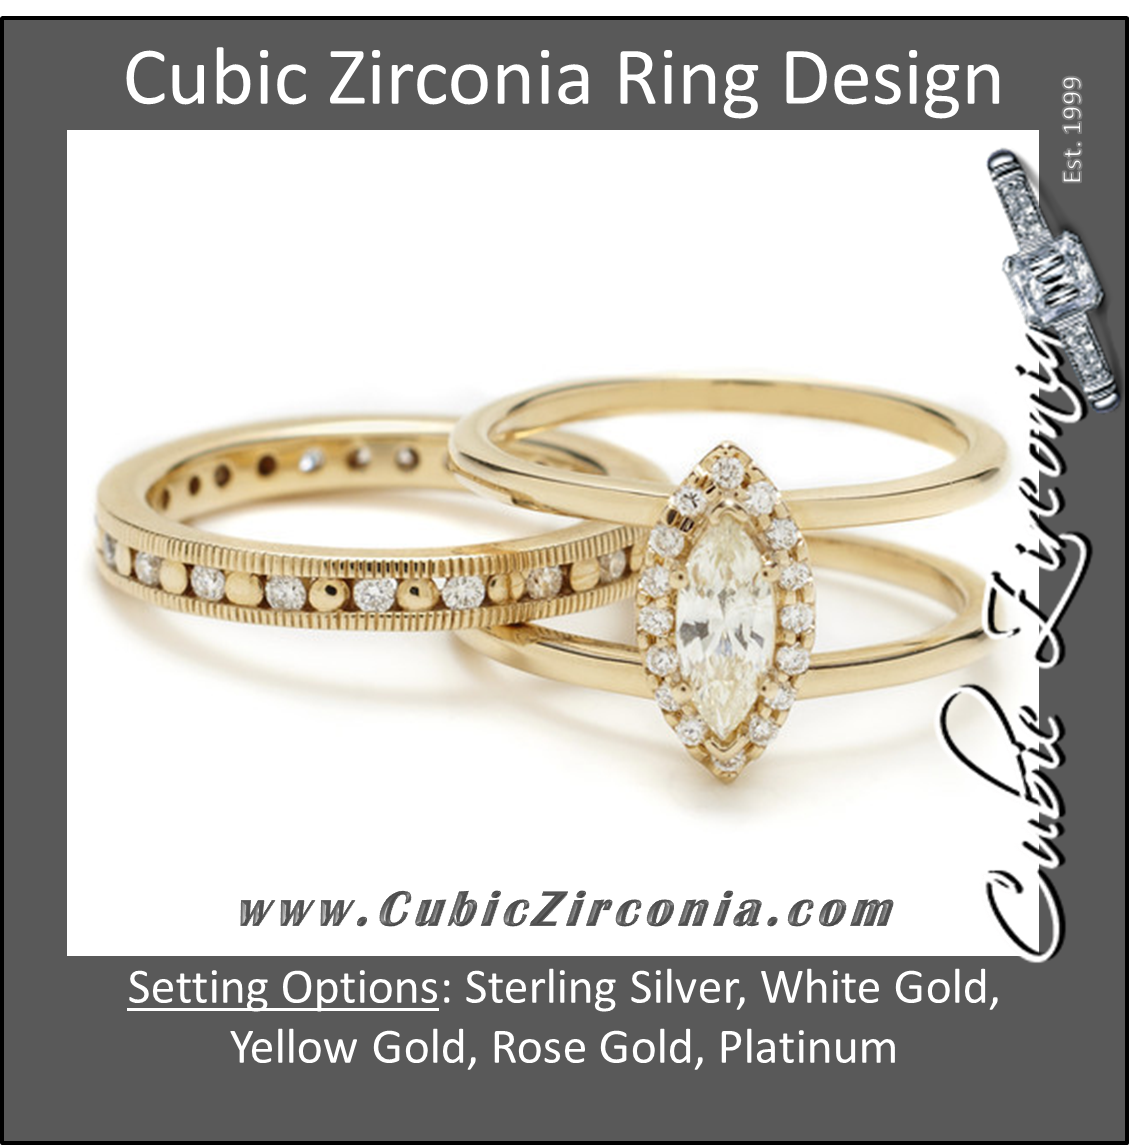 CZ Wedding Set Double Banded Harness Ring With Round Channel Hand Engraved Band